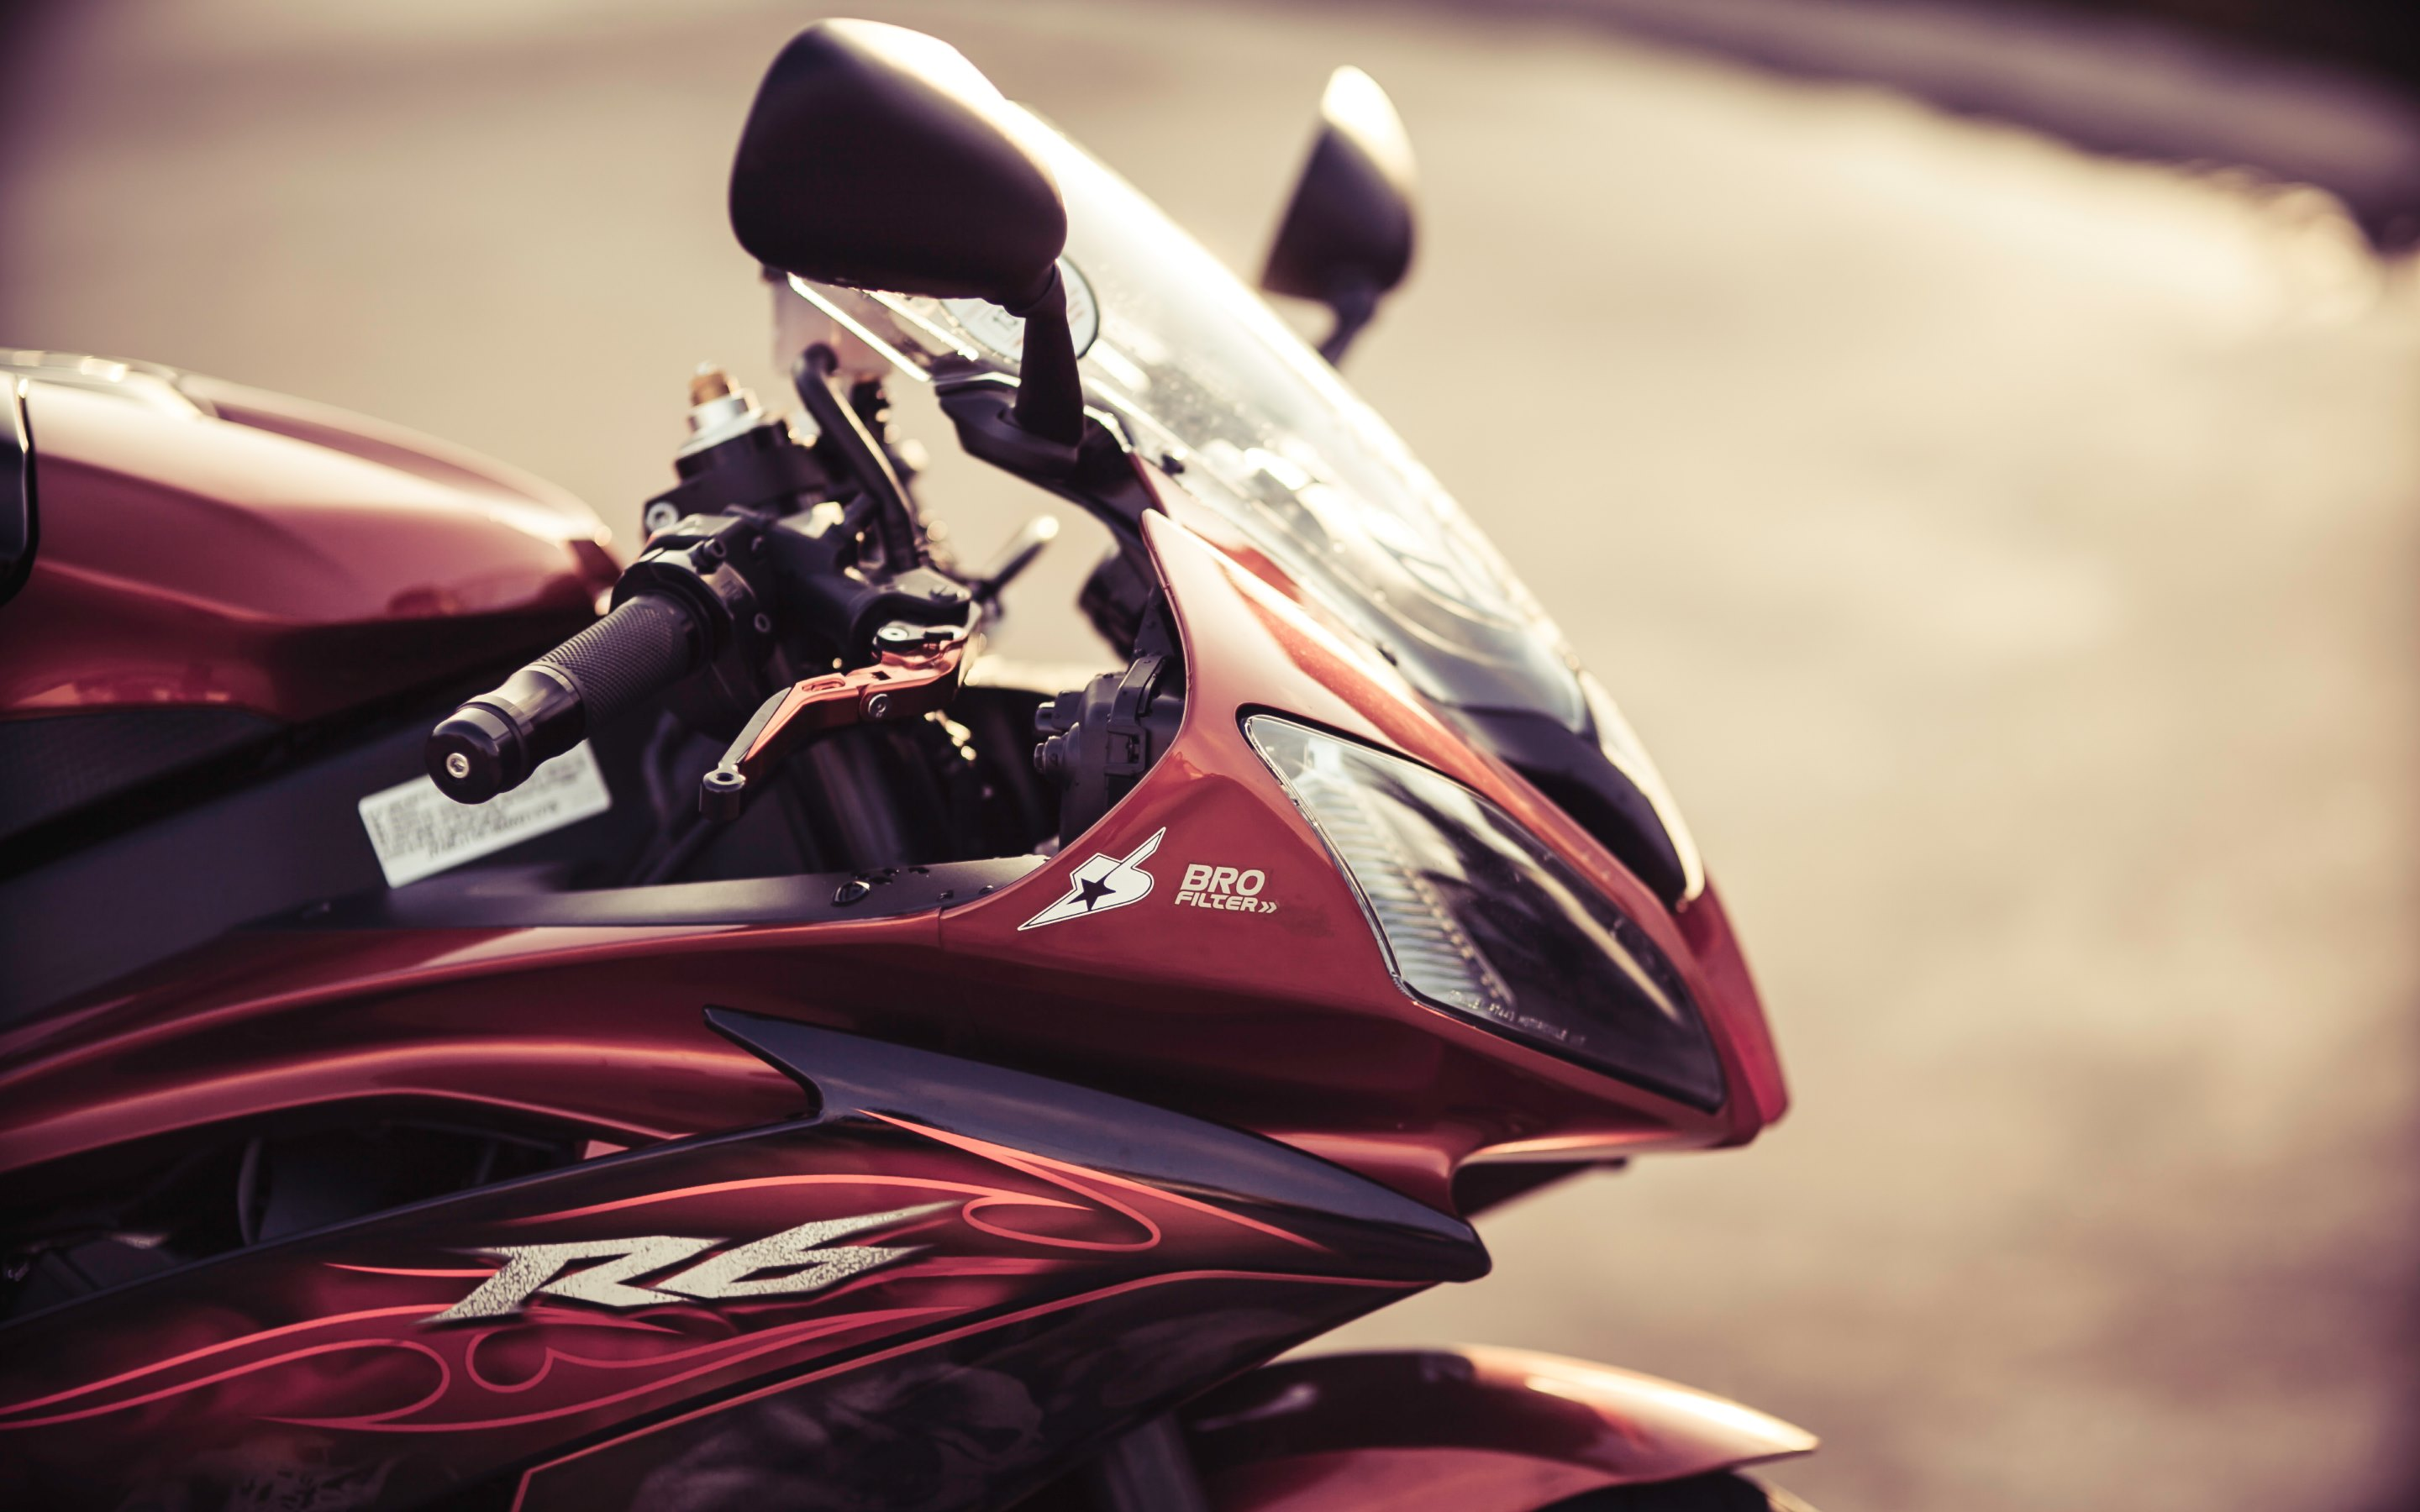 yamaha r6 motorcycle wallpapers in hd 4k and wide sizes